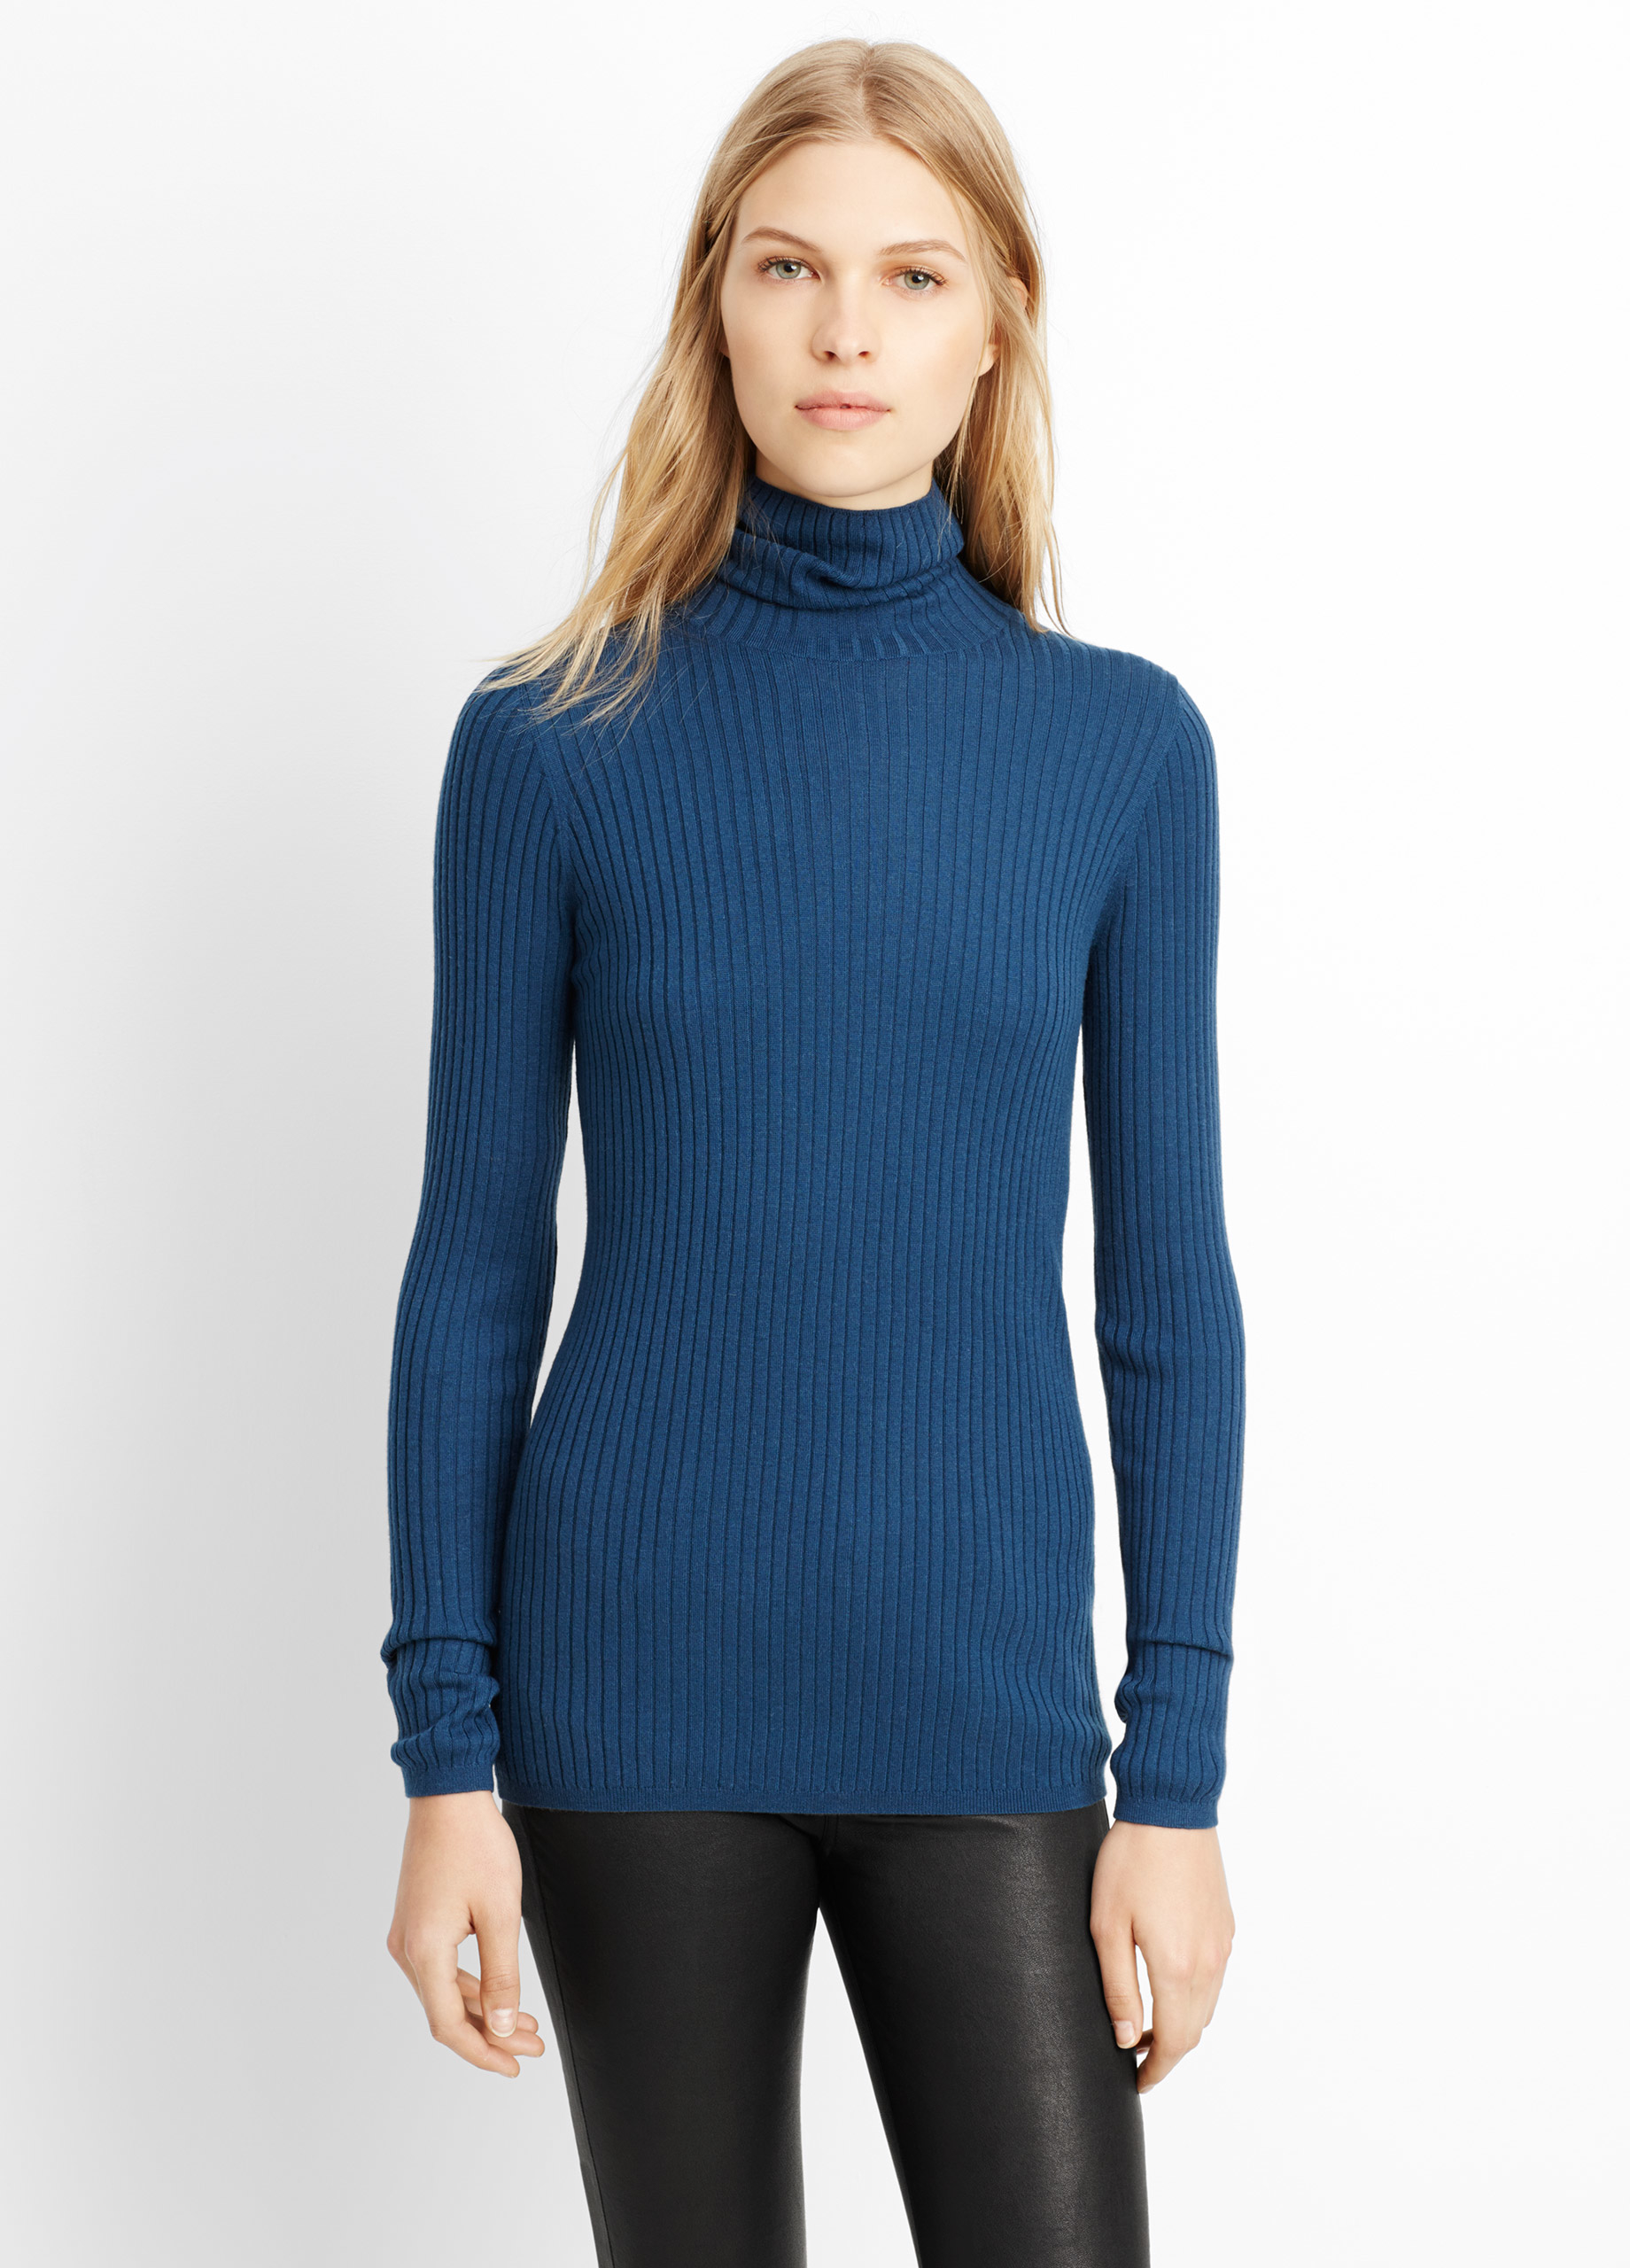 Merino Wool Turtleneck Sweater $ $ Free Standard Shipping on orders $ or more More colors available for Merino Wool Turtleneck Sweater More colors available + Cable-Knit Cashmere Swing Sweater $ Free Standard Shipping on orders $ or more.